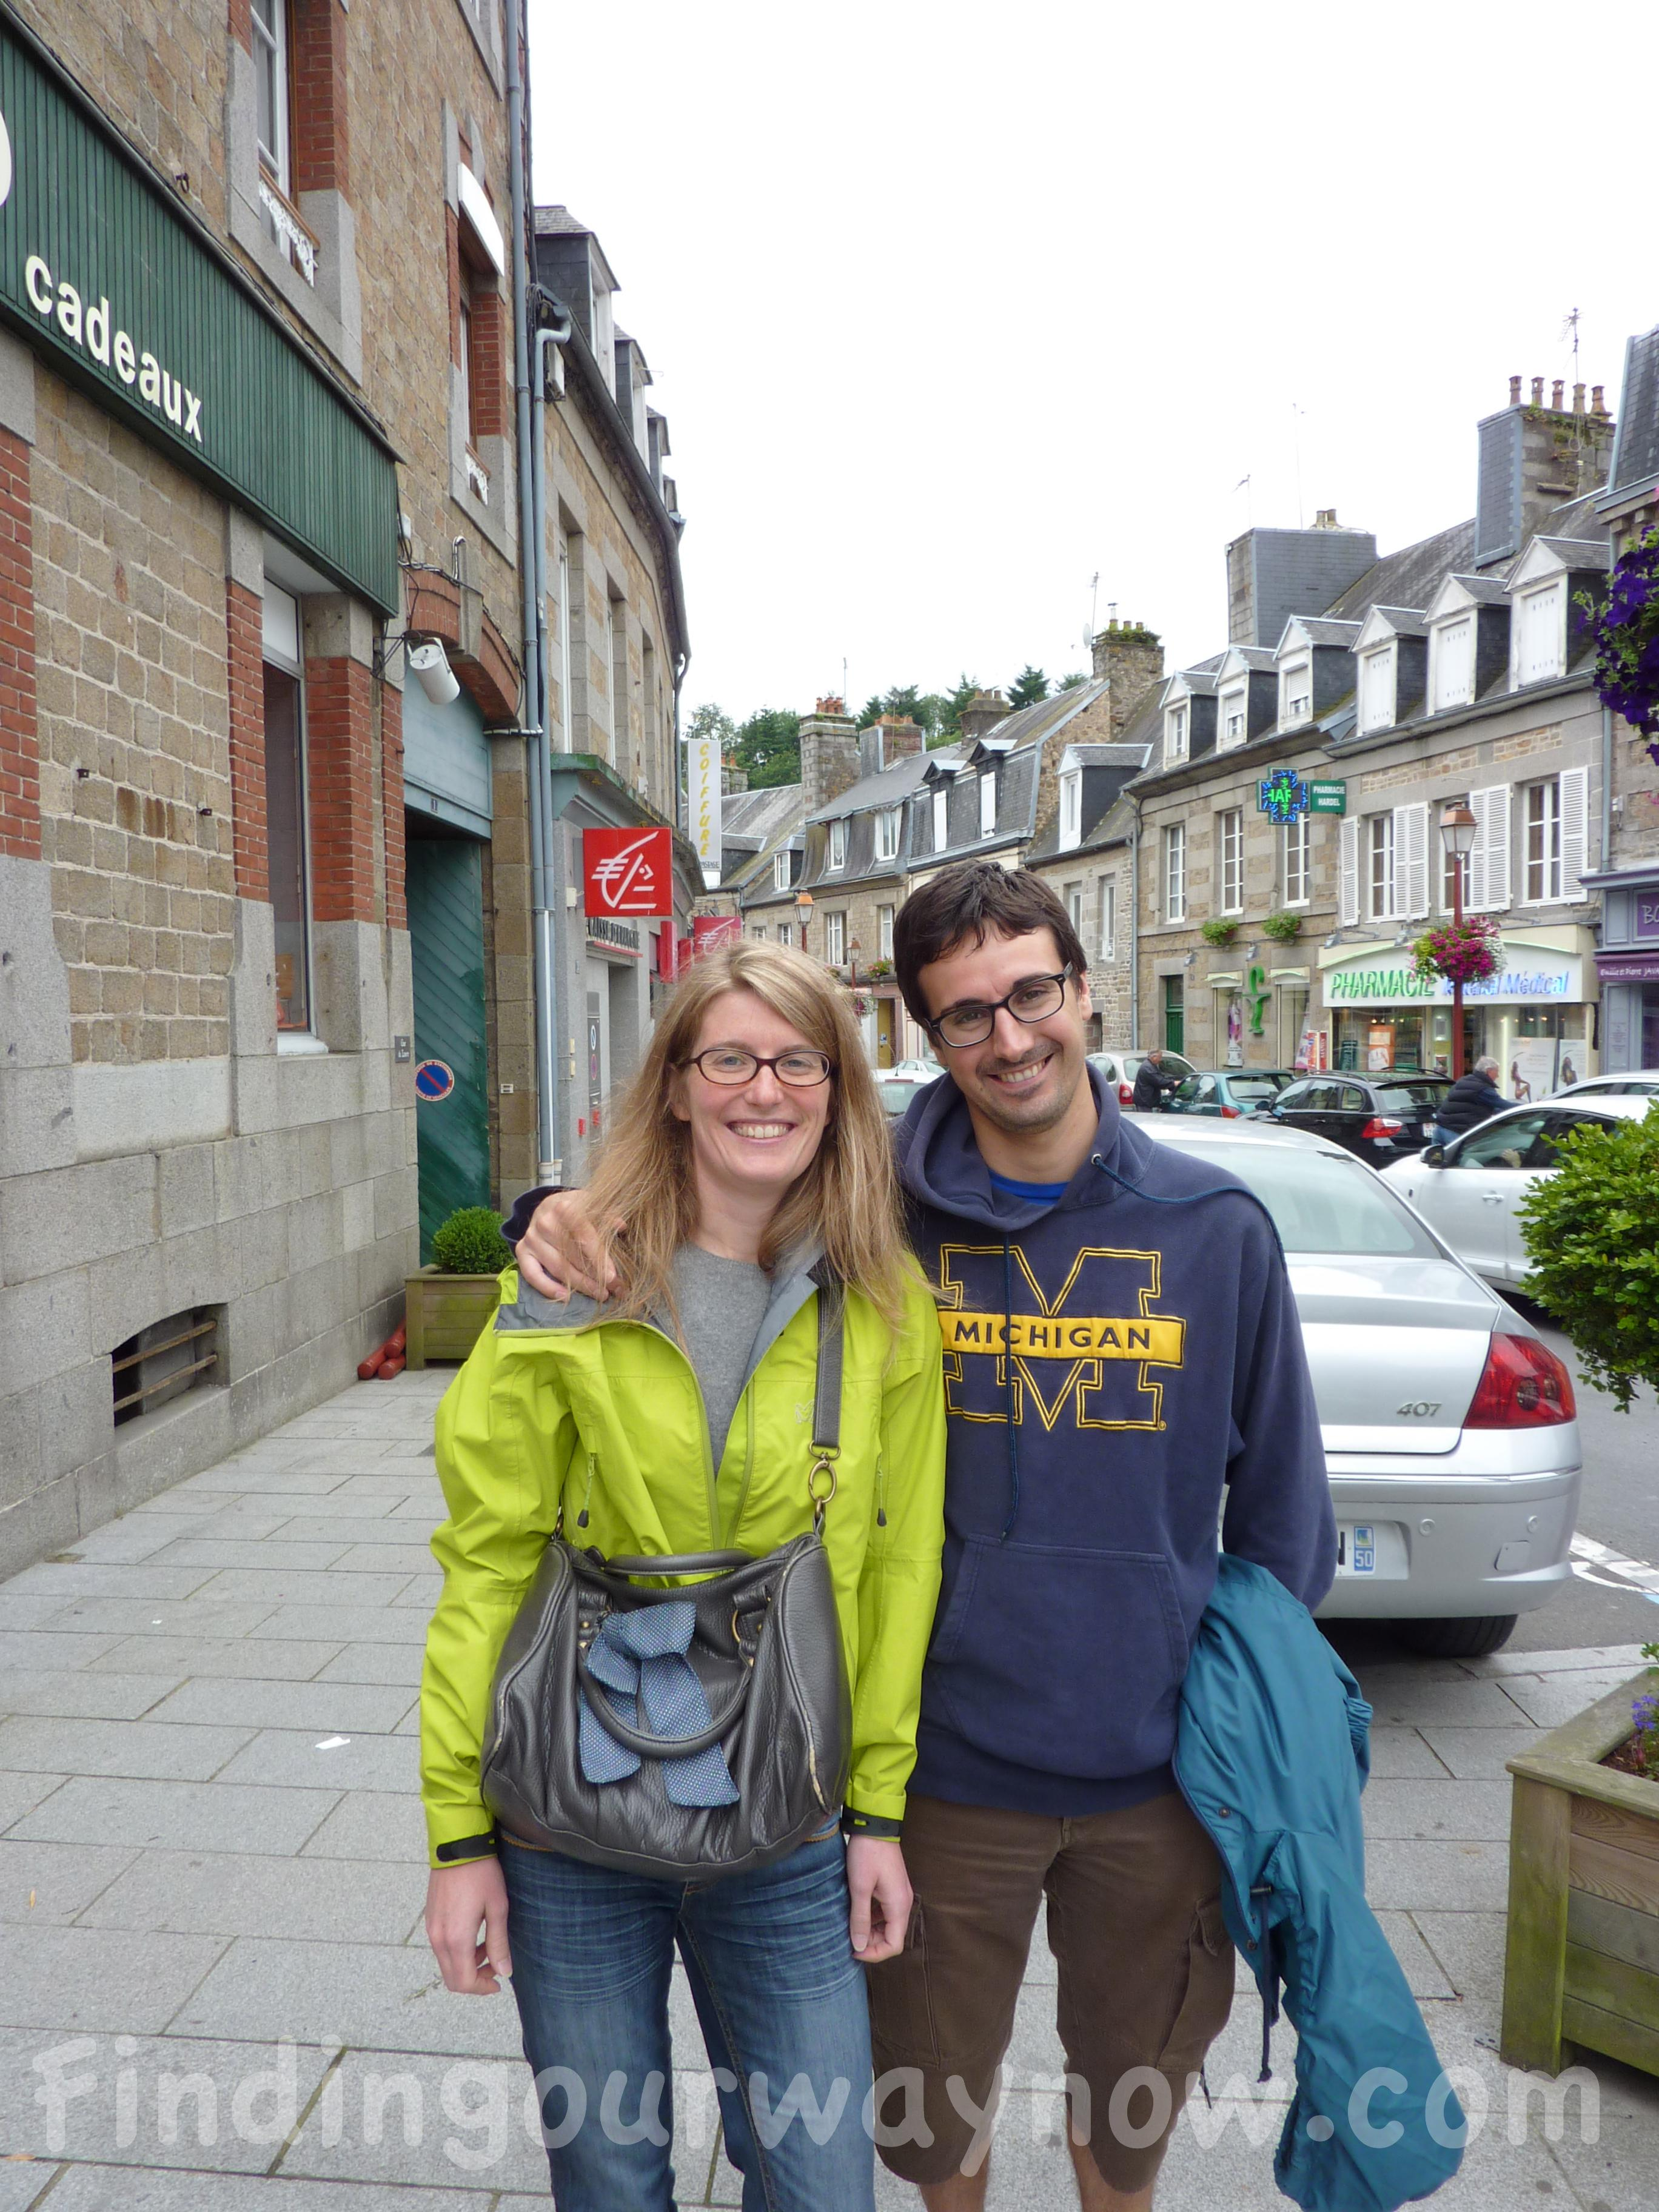 Sightseeing in France - Week 1, findingourwaynow.com